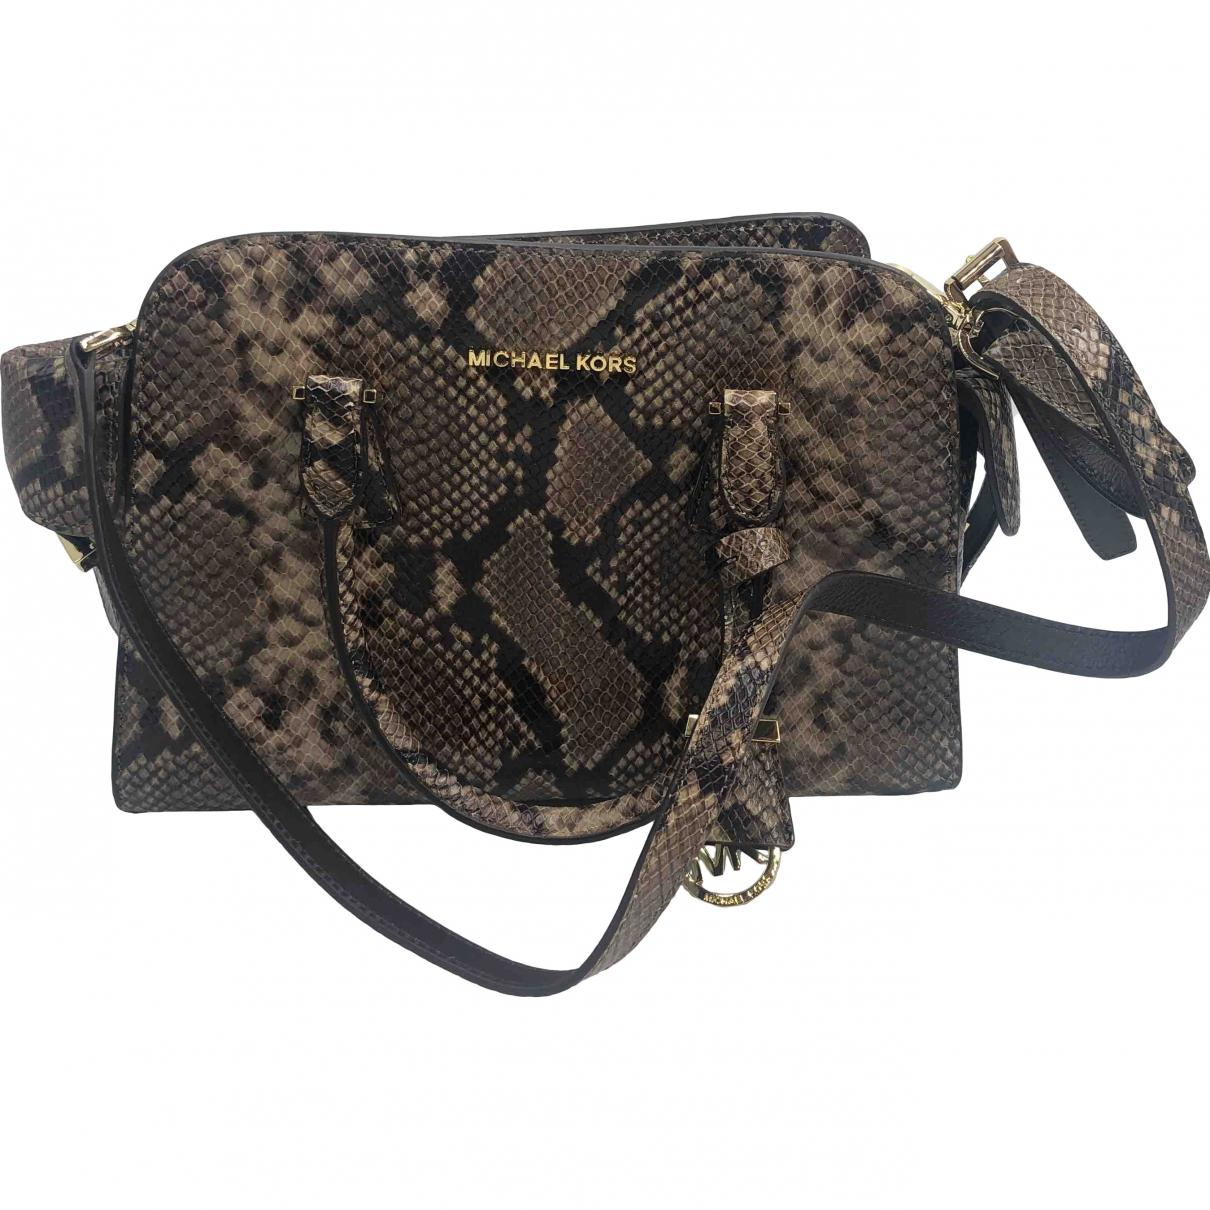 c3100e30a445 Michael Kors - Multicolor Python Crossbody Bag - Lyst. View fullscreen